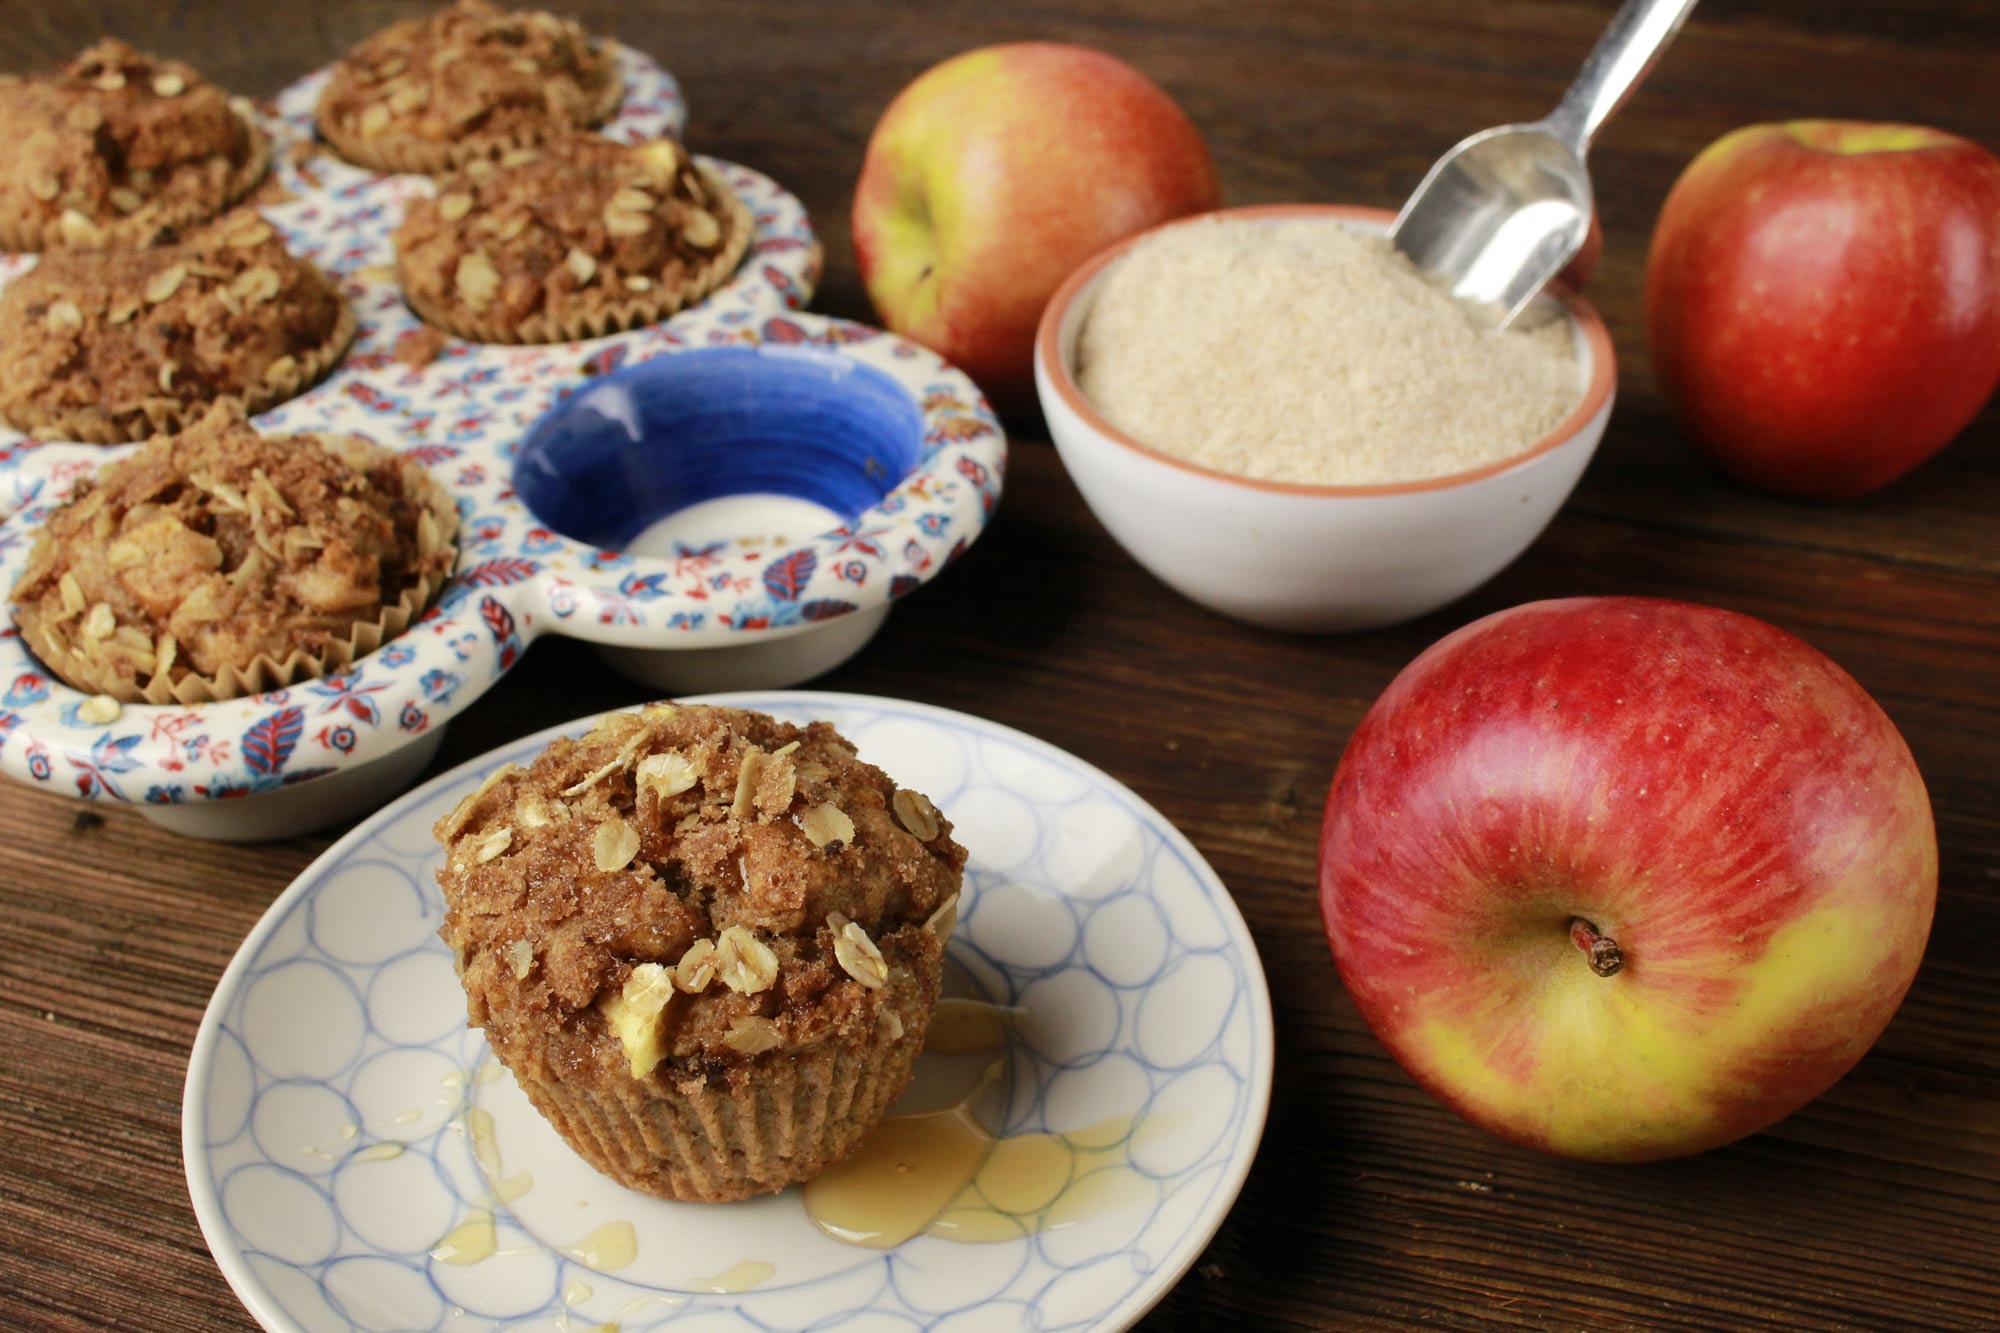 Apple Breakfast Muffins (made with emmer flour)